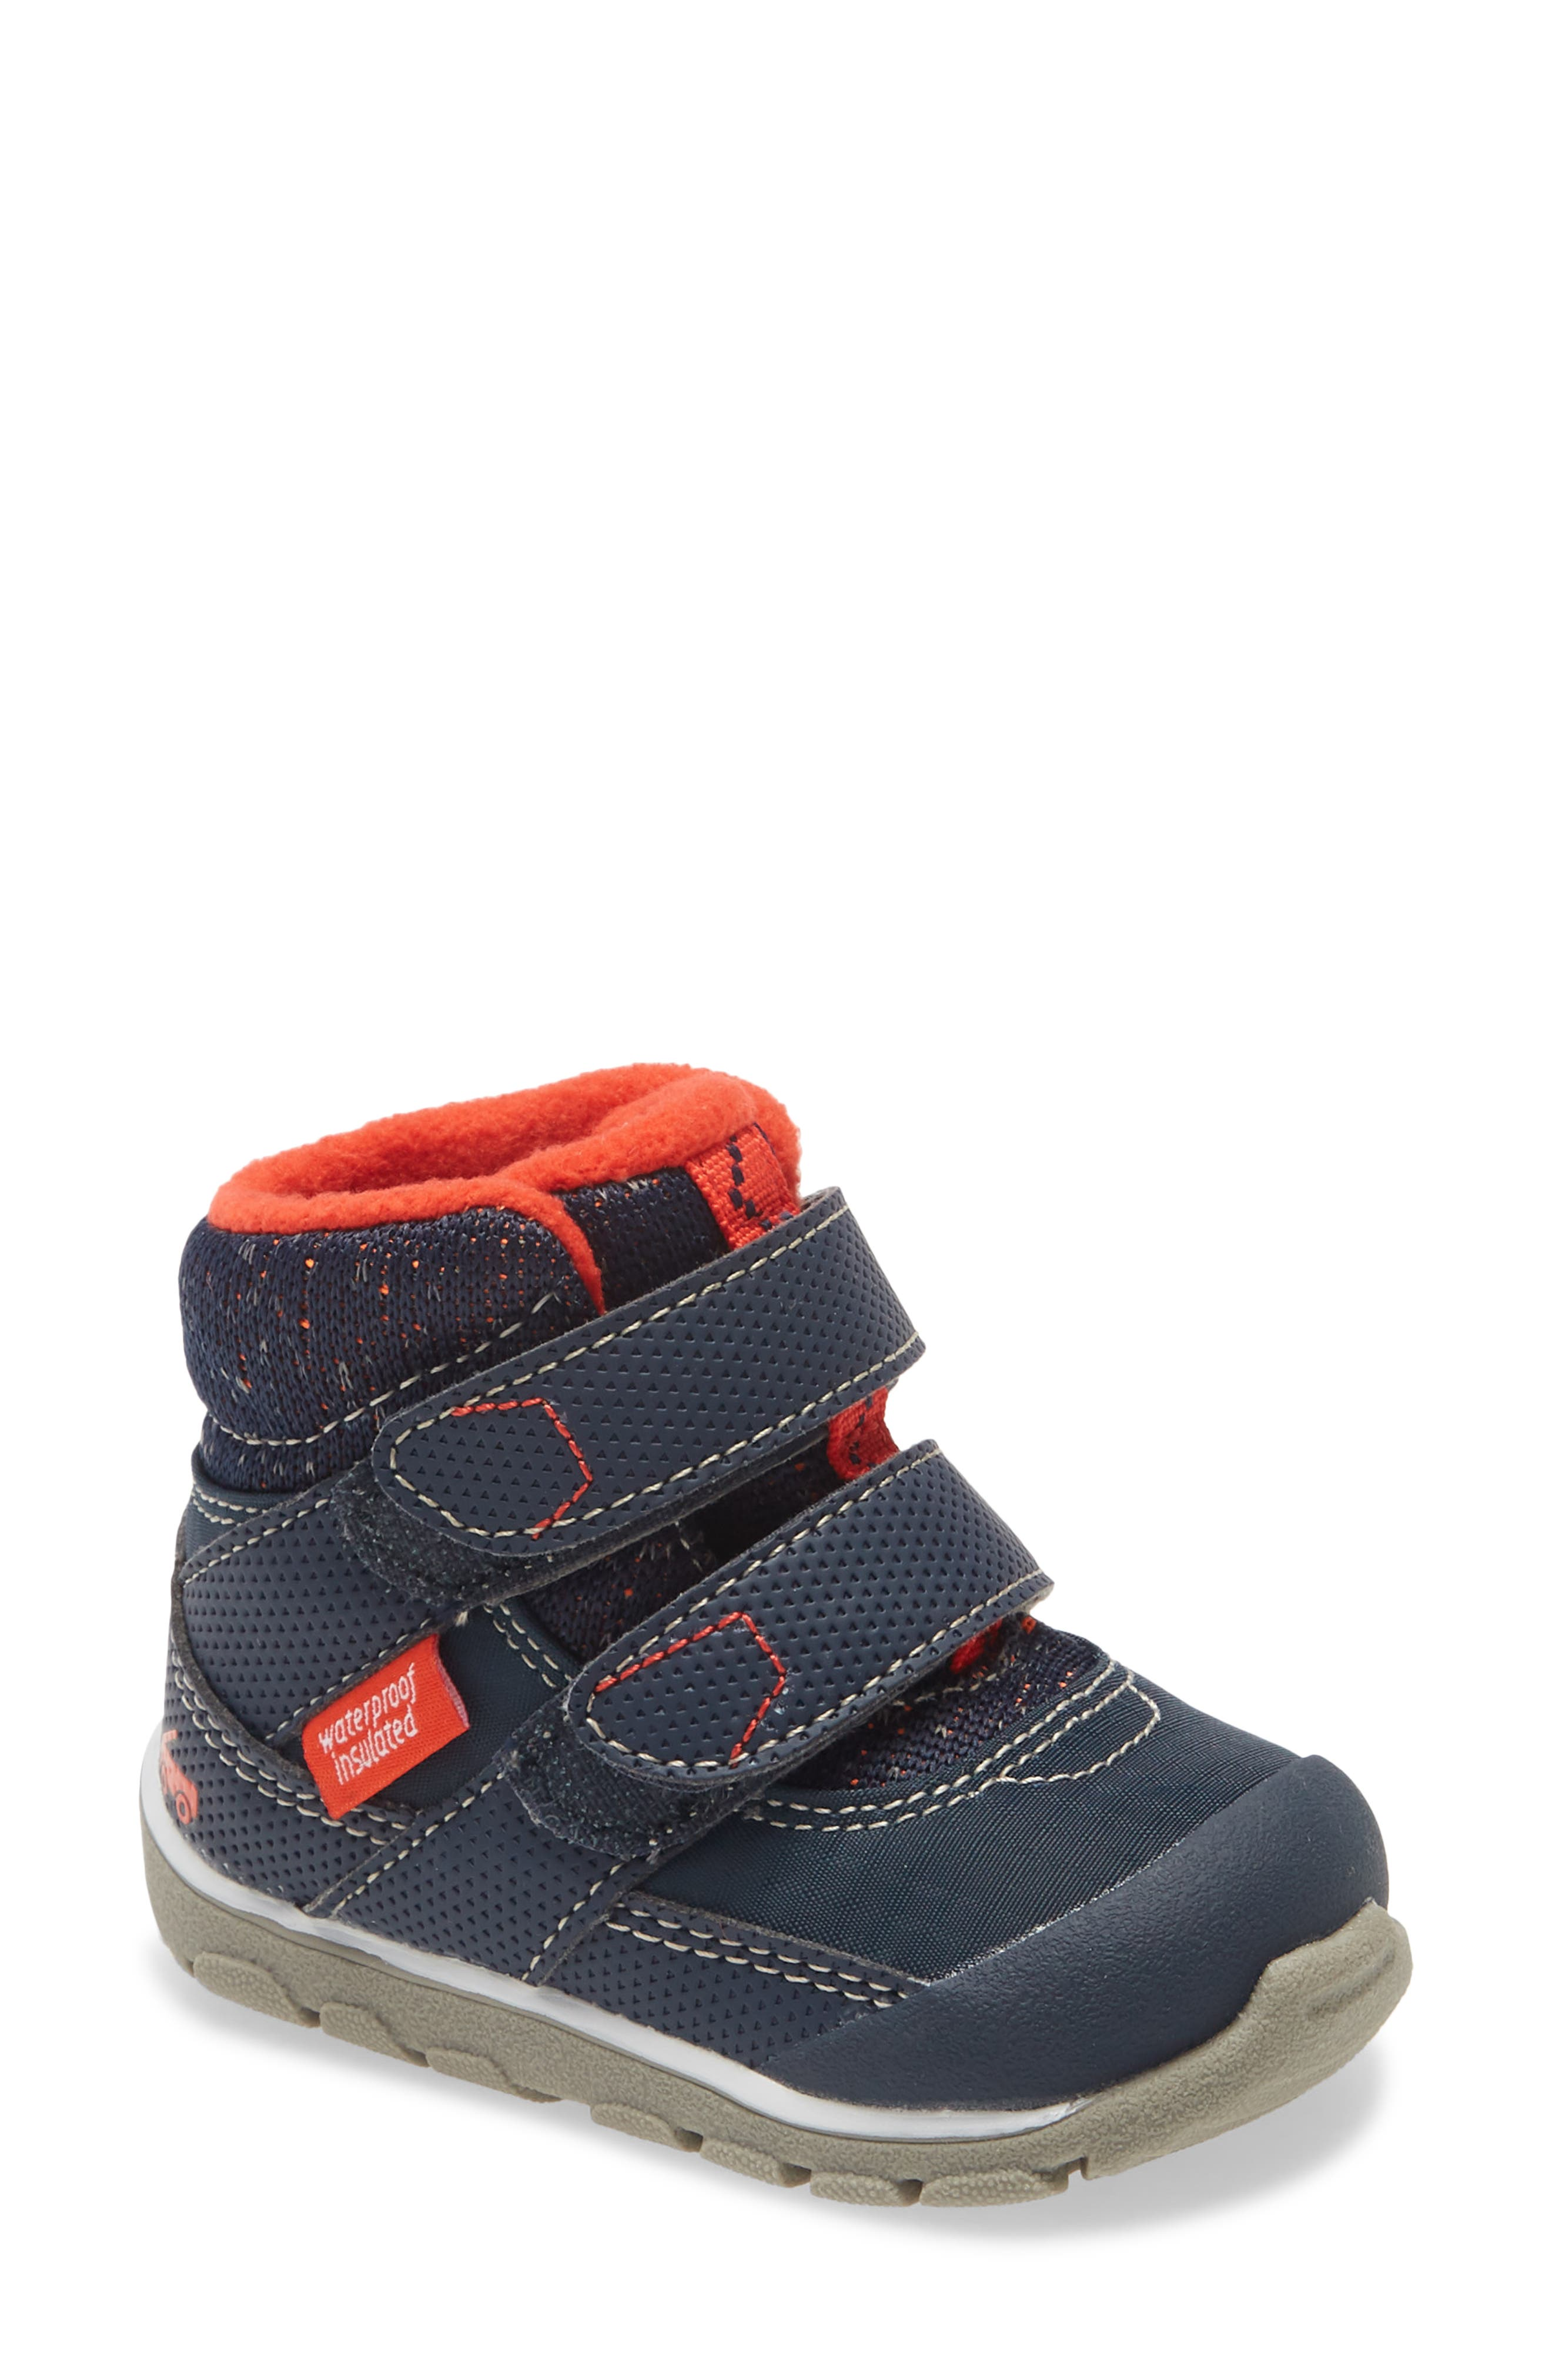 Baby For Boys's Shoes: First Walkers